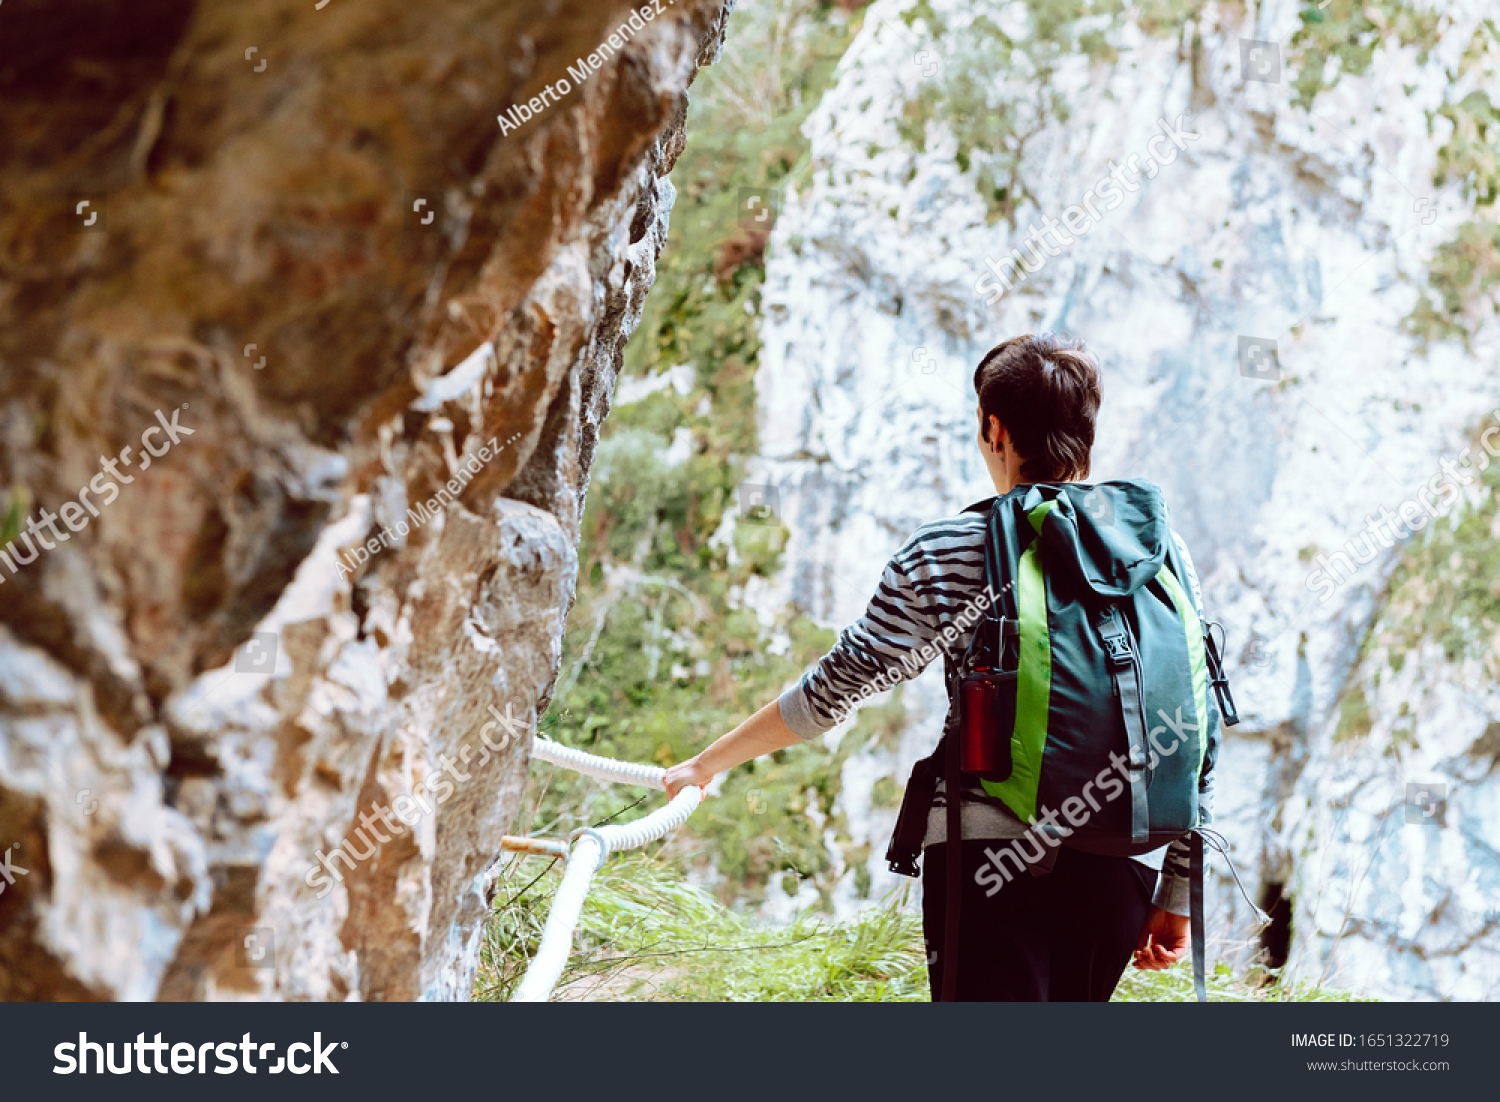 Hiker clutching a safety rope during his ascent to the mountain. Lifestyle concept. #1651322719